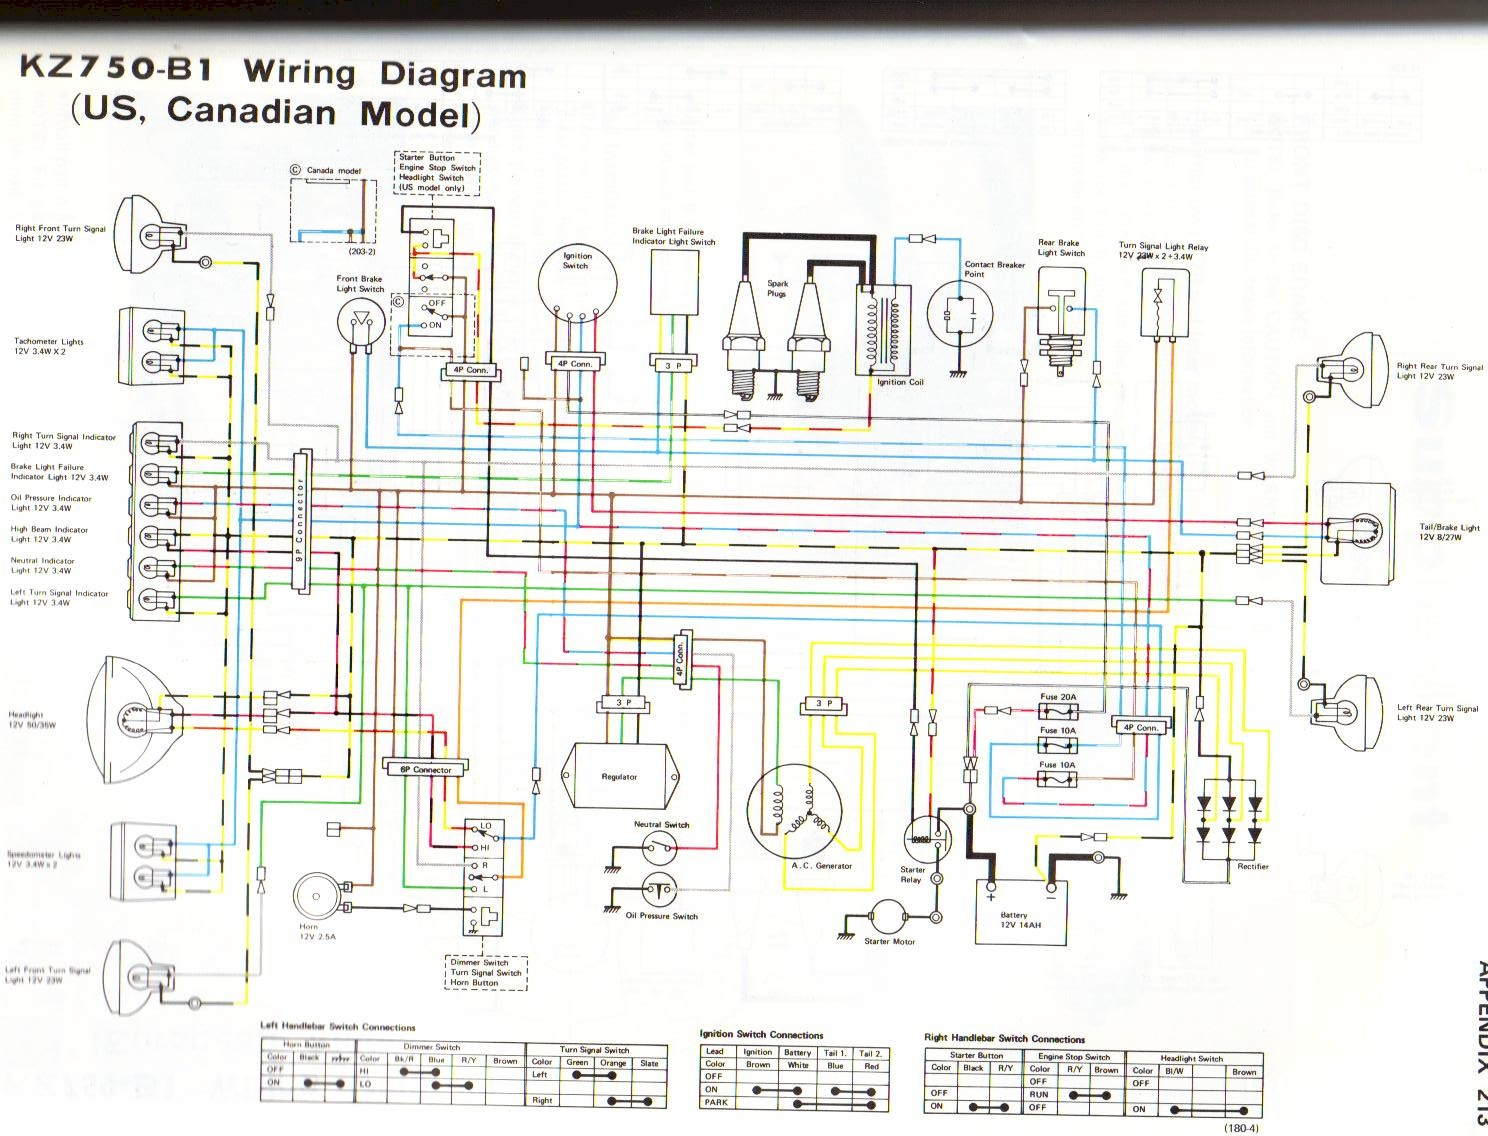 kz750b1?resize=640%2C489 1982 kawasaki kz750 manual pdf hobbiesxstyle kz750 wiring diagram at n-0.co